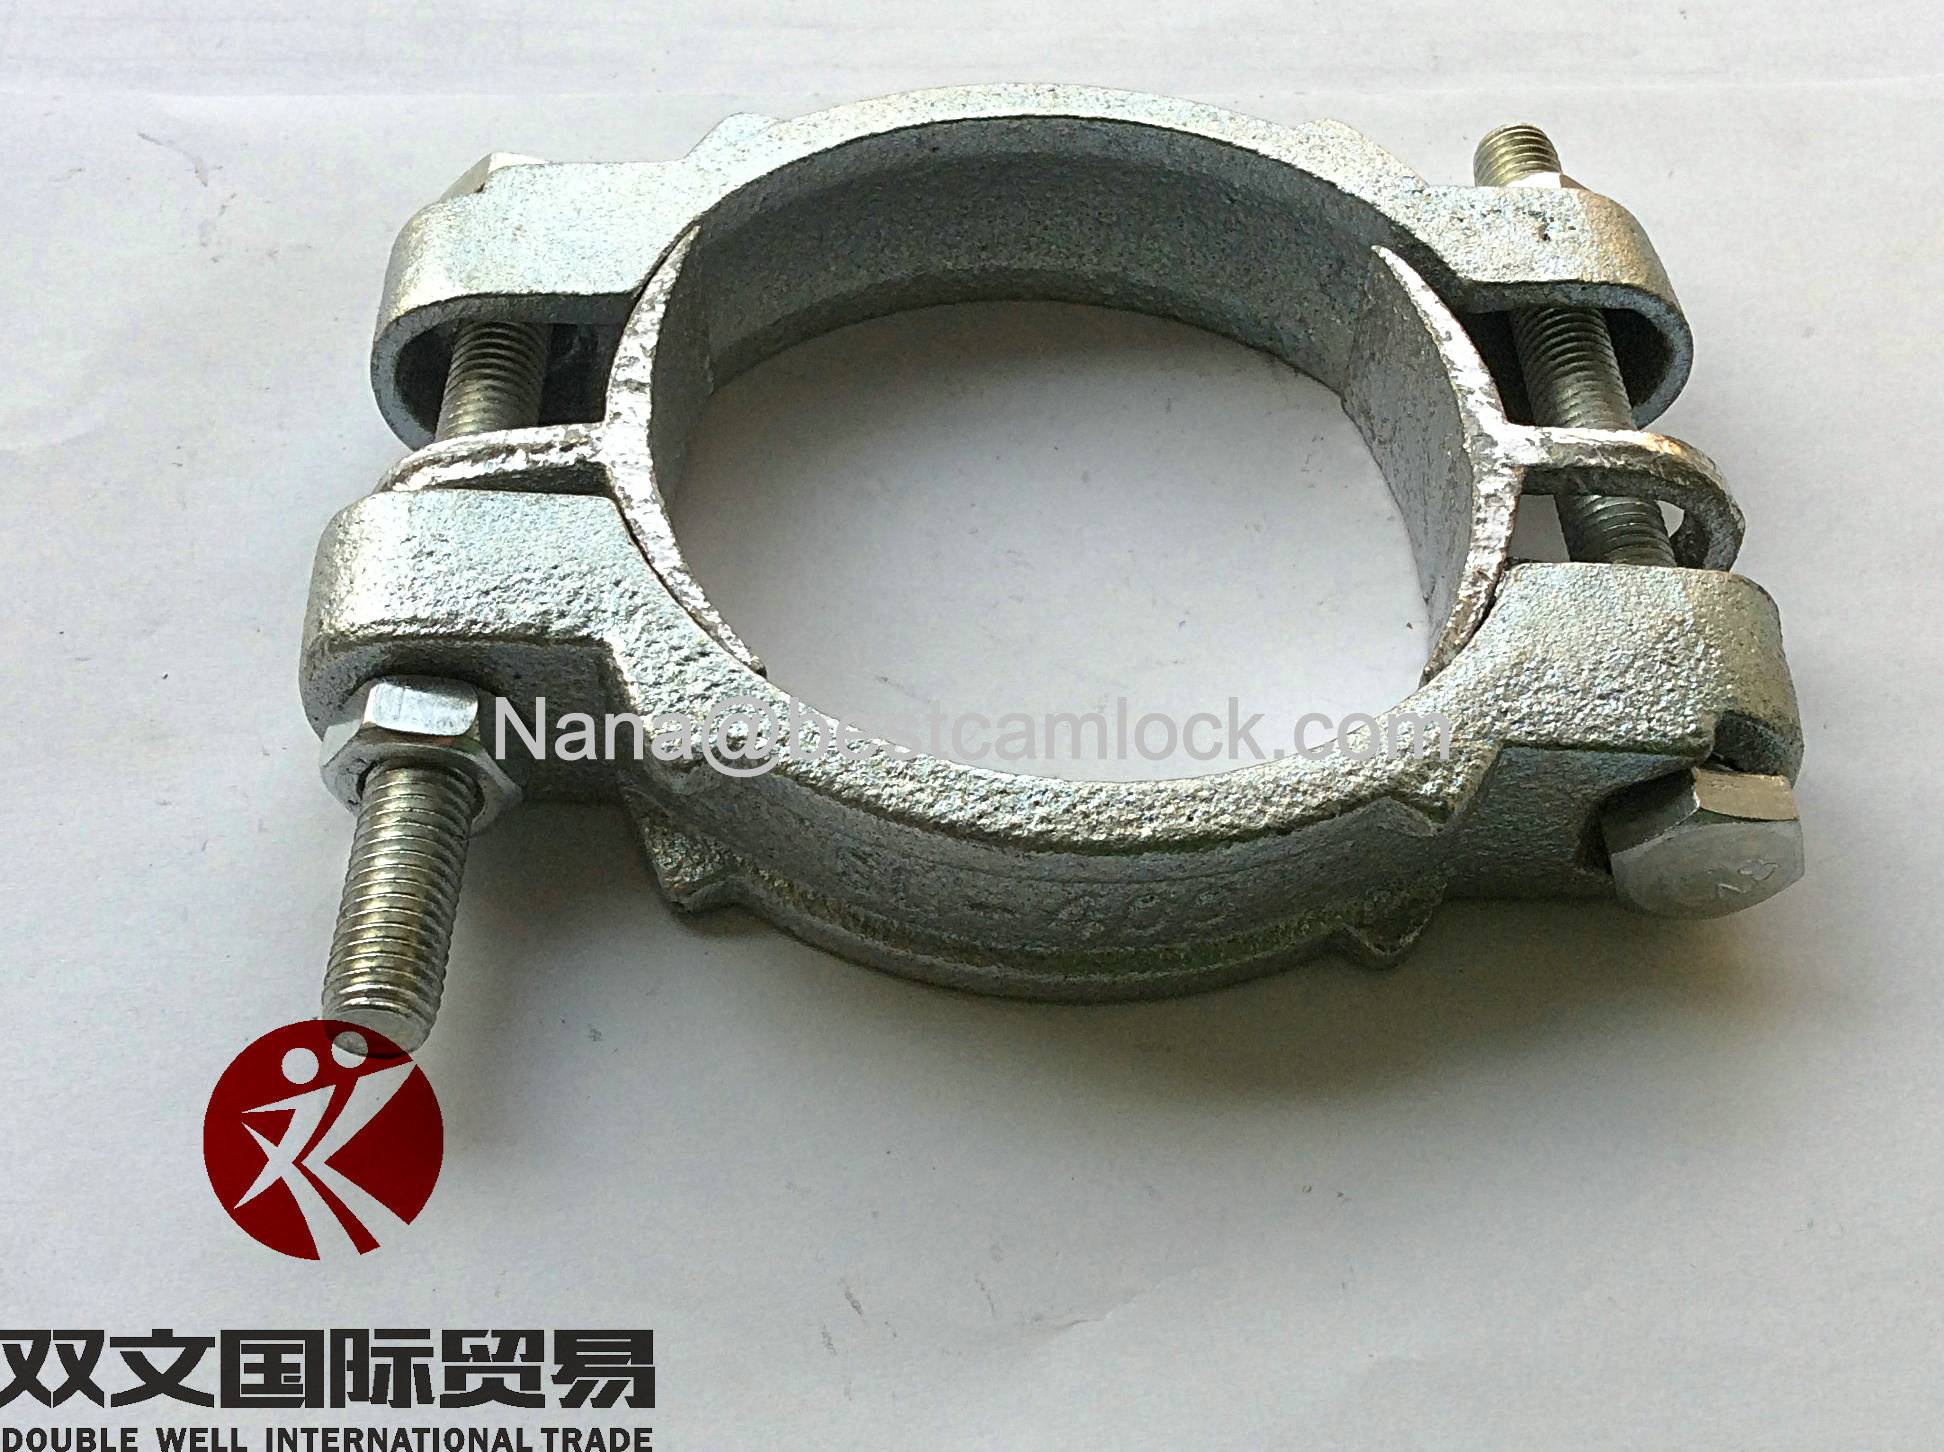 Double bolt hose clamps